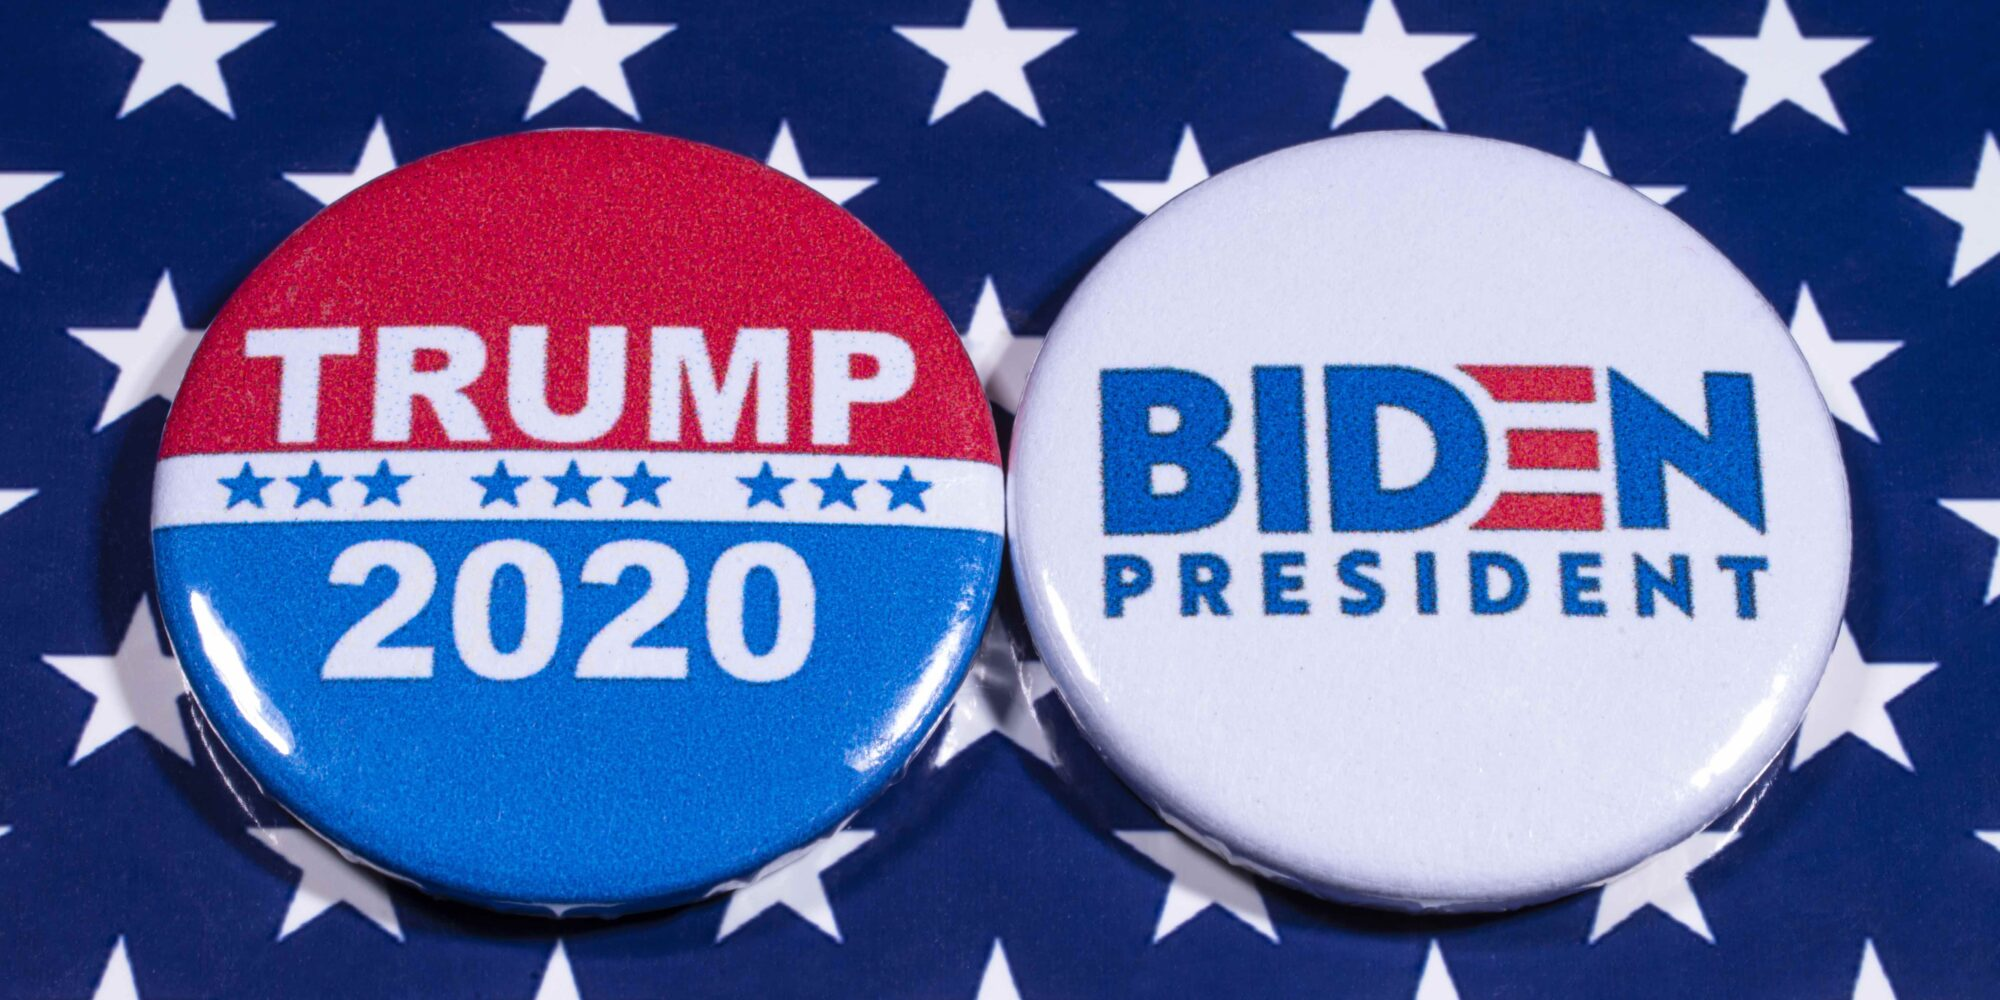 What Beauty Entrepreneurs Want The Next President To Do